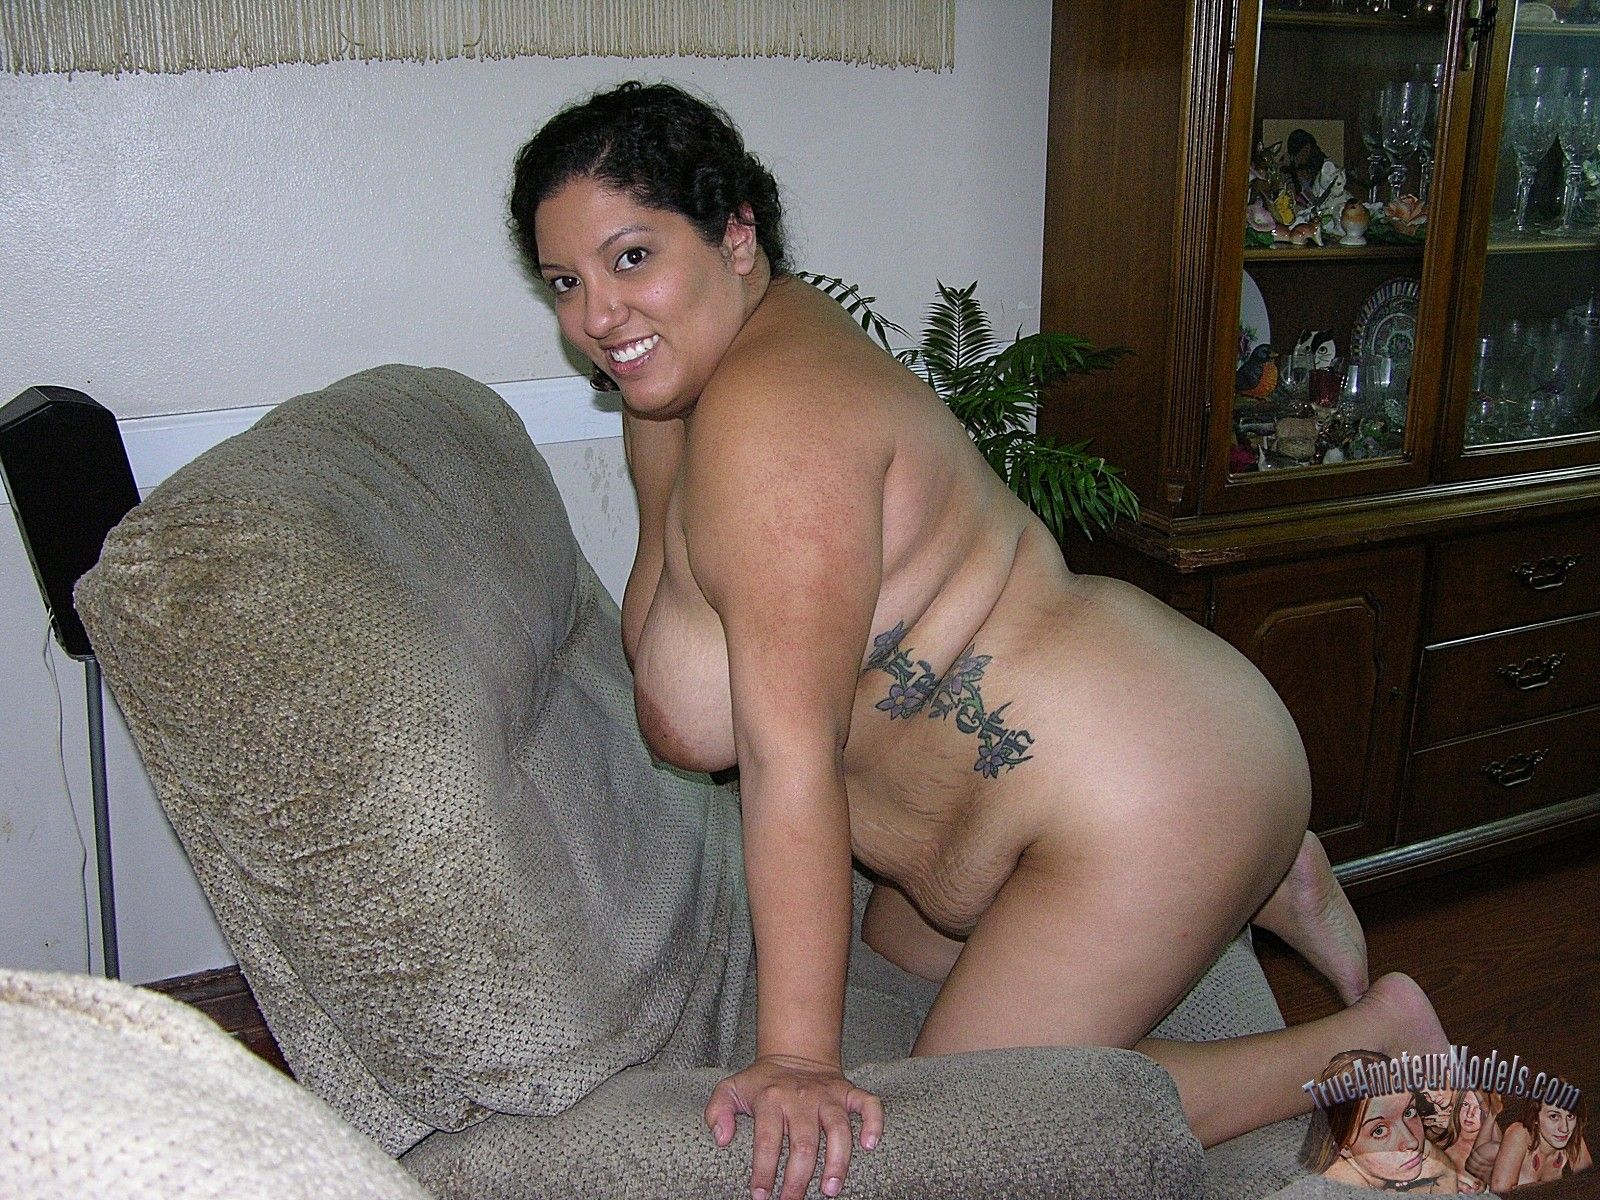 Nude Latin Bbw Best big breasted latina bbw modeling nude at homemade amateur nude